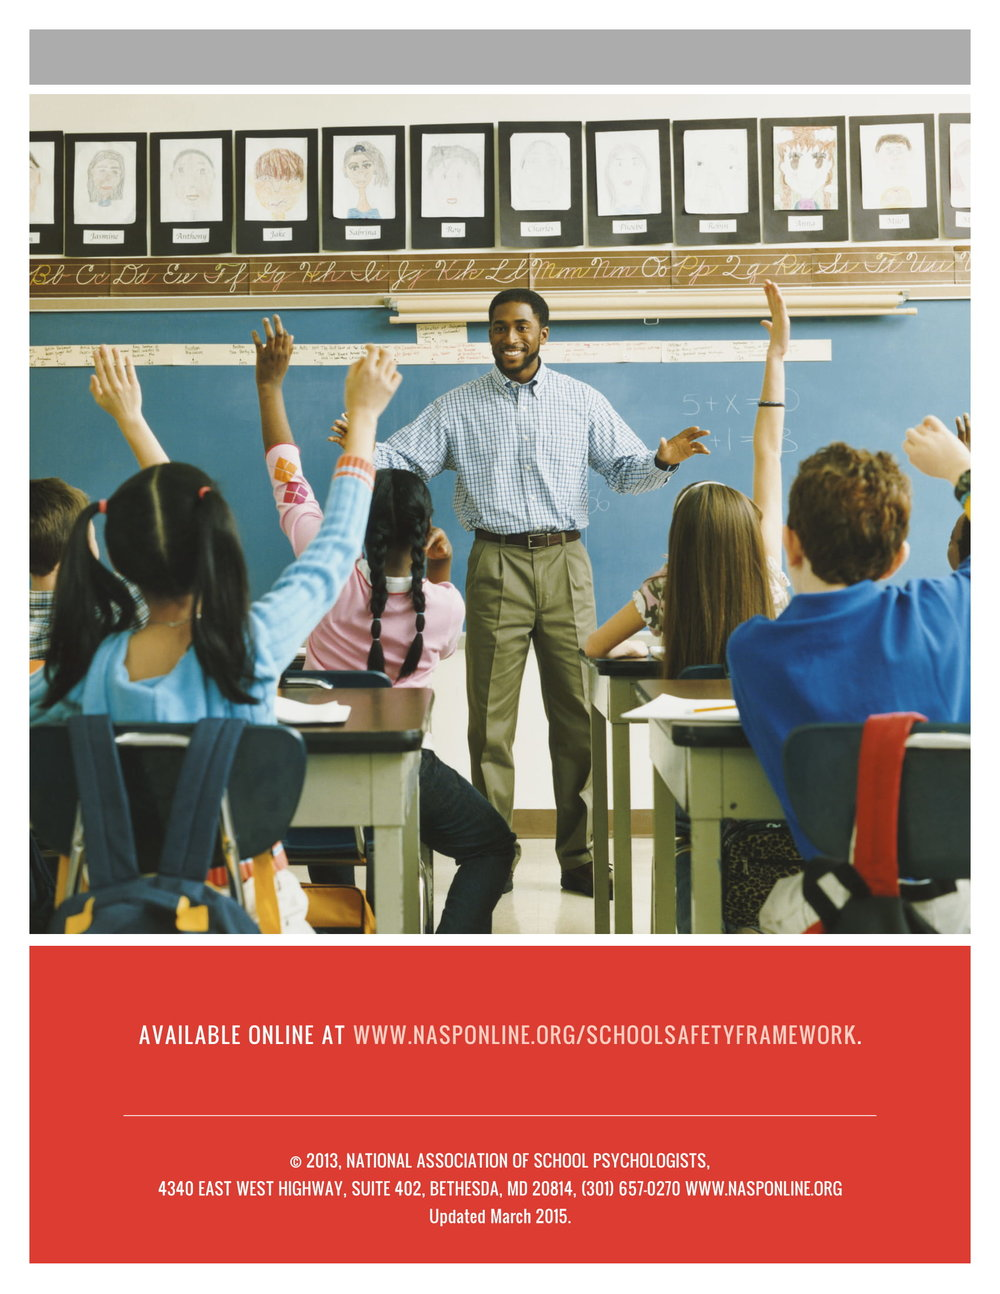 Framework_for_Safe_and_Successful_School_Environments (1)-16.jpg